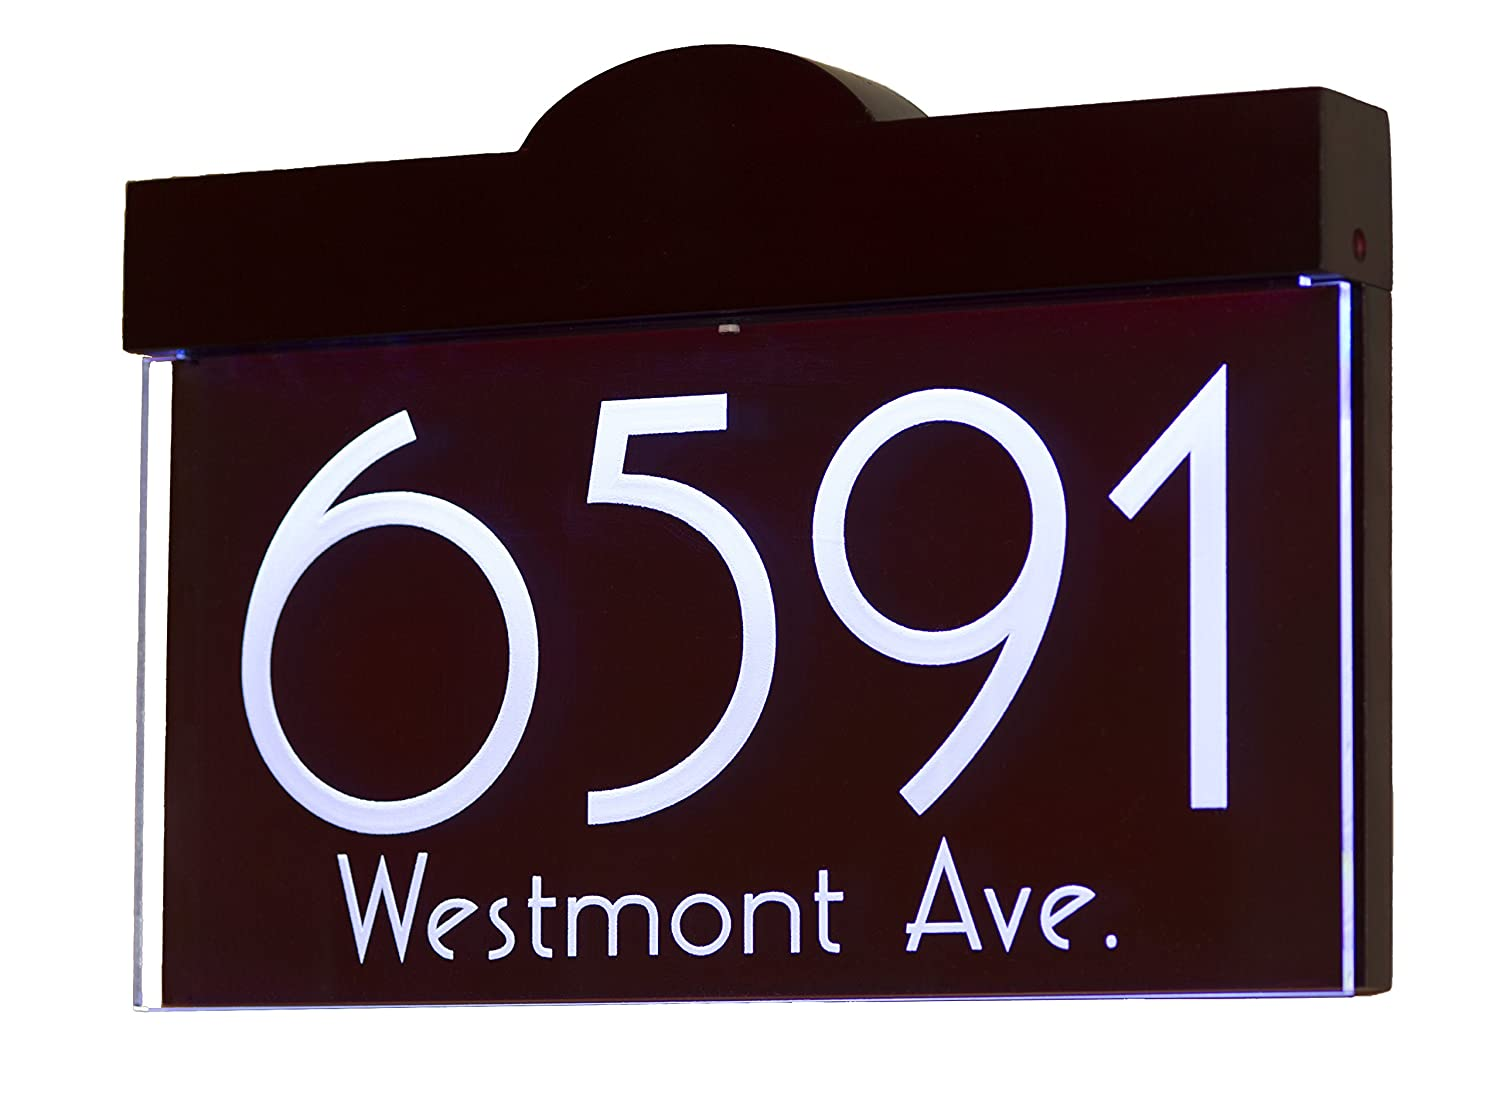 12-16V AC Illuminated House Numbers Address Sign Address Plaque LED Lighted Laser Engraved On Acrylic Sign with Hard Wood Frame and Remote Control HenryChou 16V AC Version